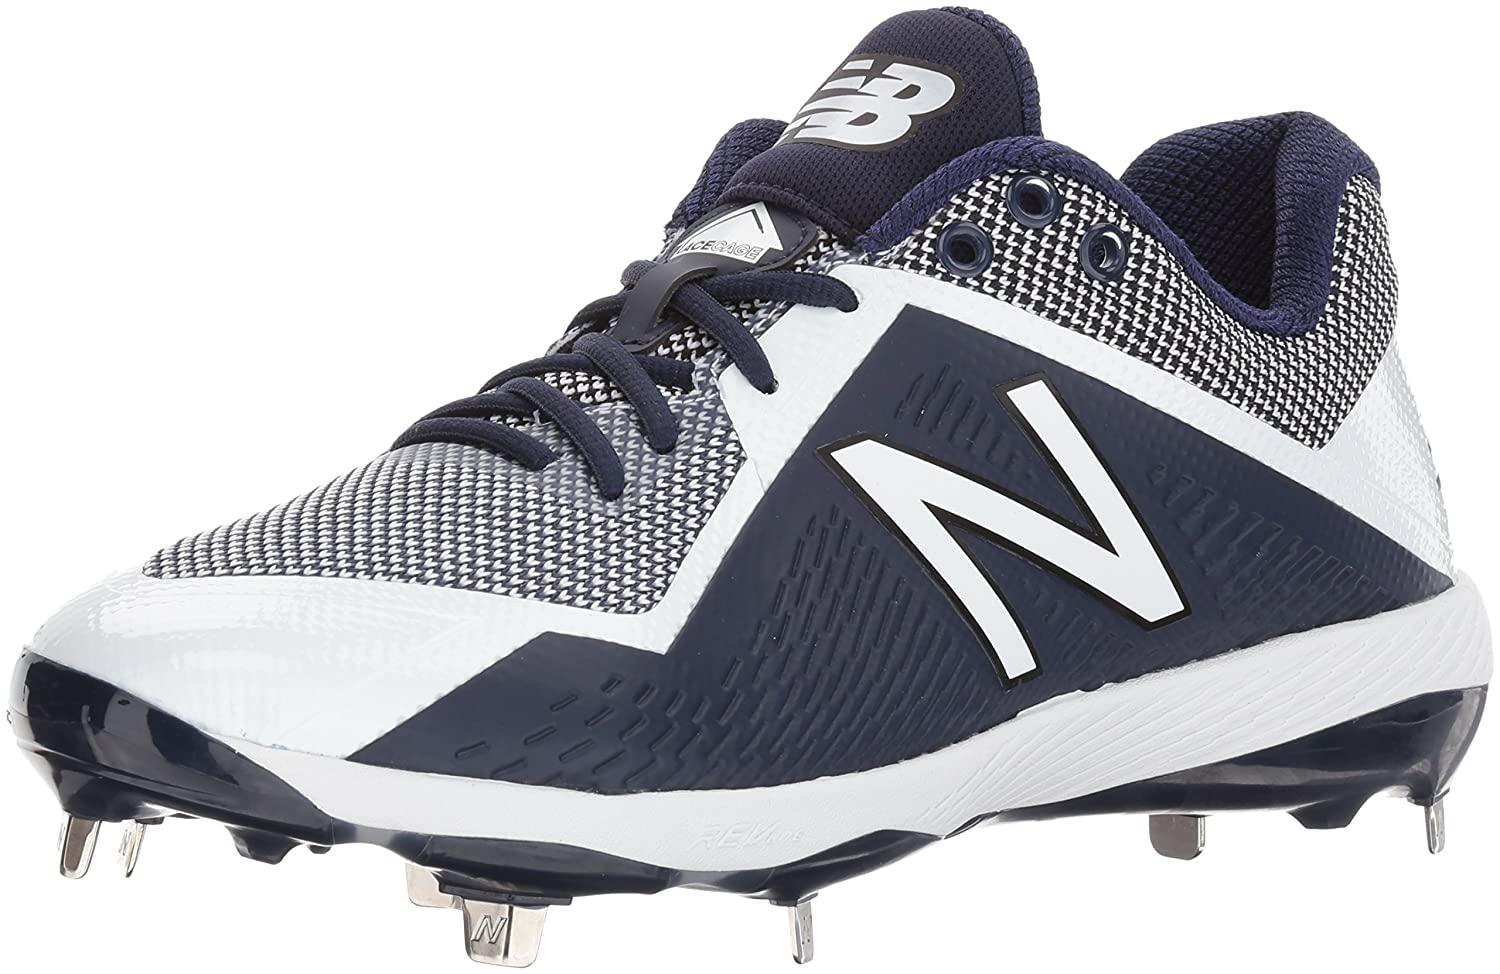 New Balance Men's L4040v4 Metal Baseball Shoe B01N66HEA6 10.5 2E US|Navy/White